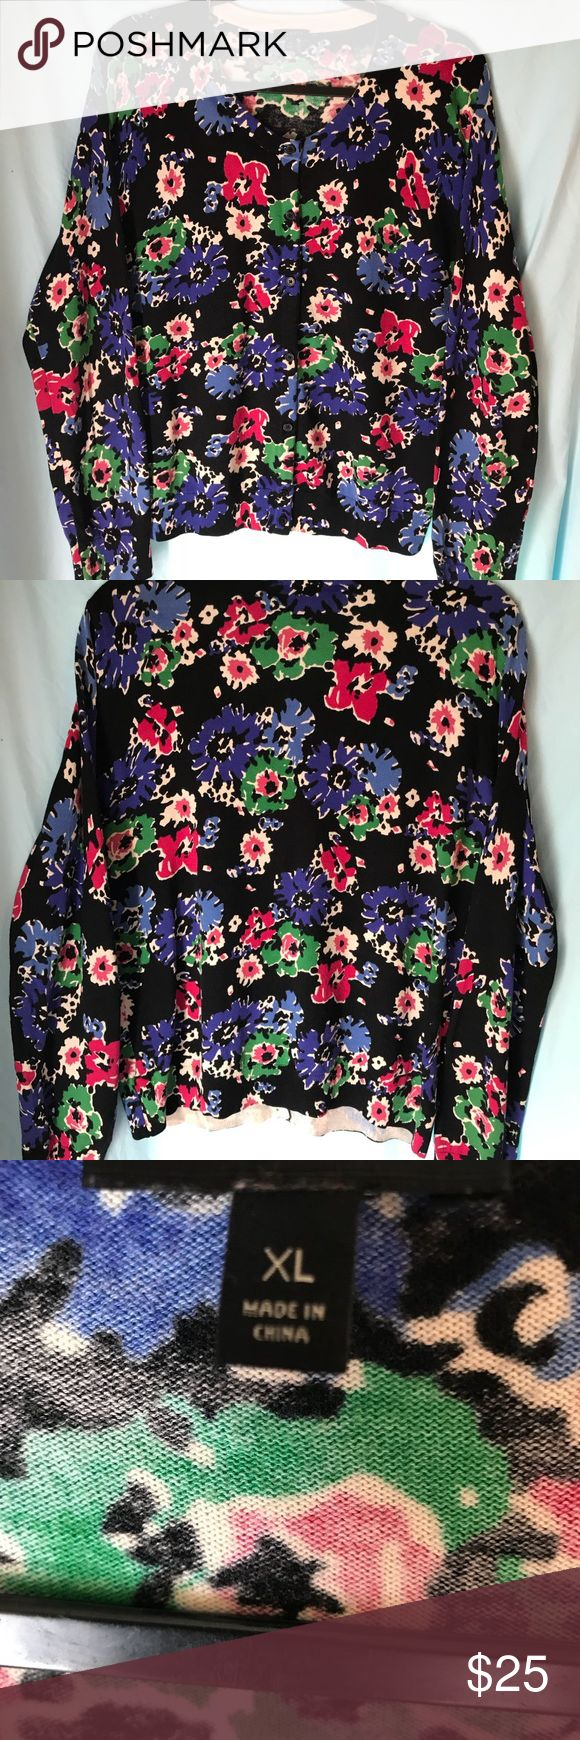 Talbots XL Multi colored Cardigan. Talbots multi colored cardigan. Size XL . Excellent Condition. Talbots Sweaters Cardigans